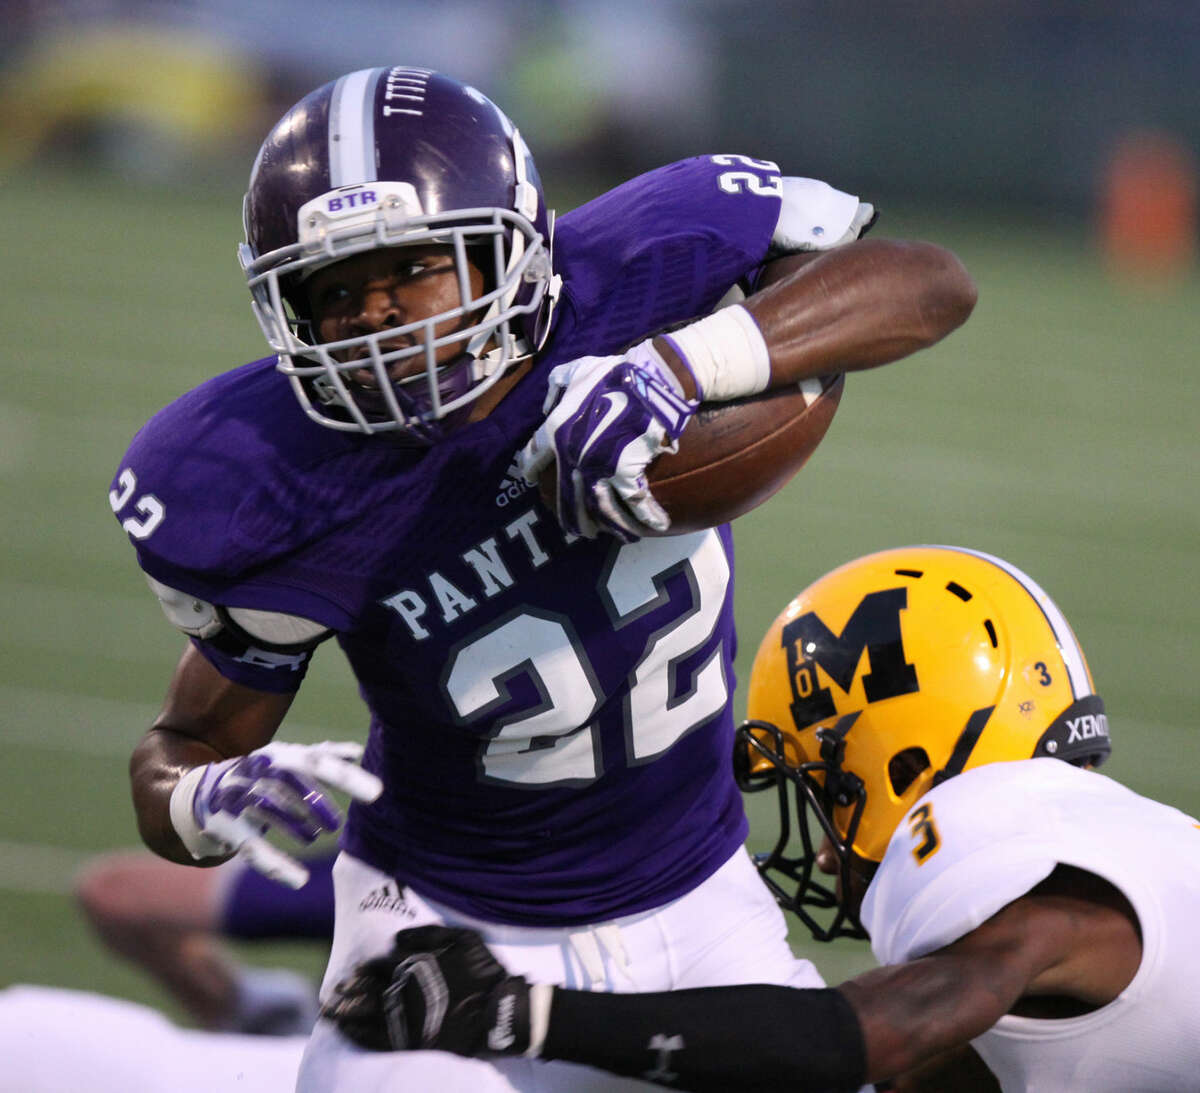 Ridge Point's Remus Butler runs against Marshall's Trevon Guillory during a District 23-5A game Sept. 25 at Hall Stadium in Missouri City. The Panthers won 13-0. To view or purchase this photo and others like it, go to HCNPics.com.